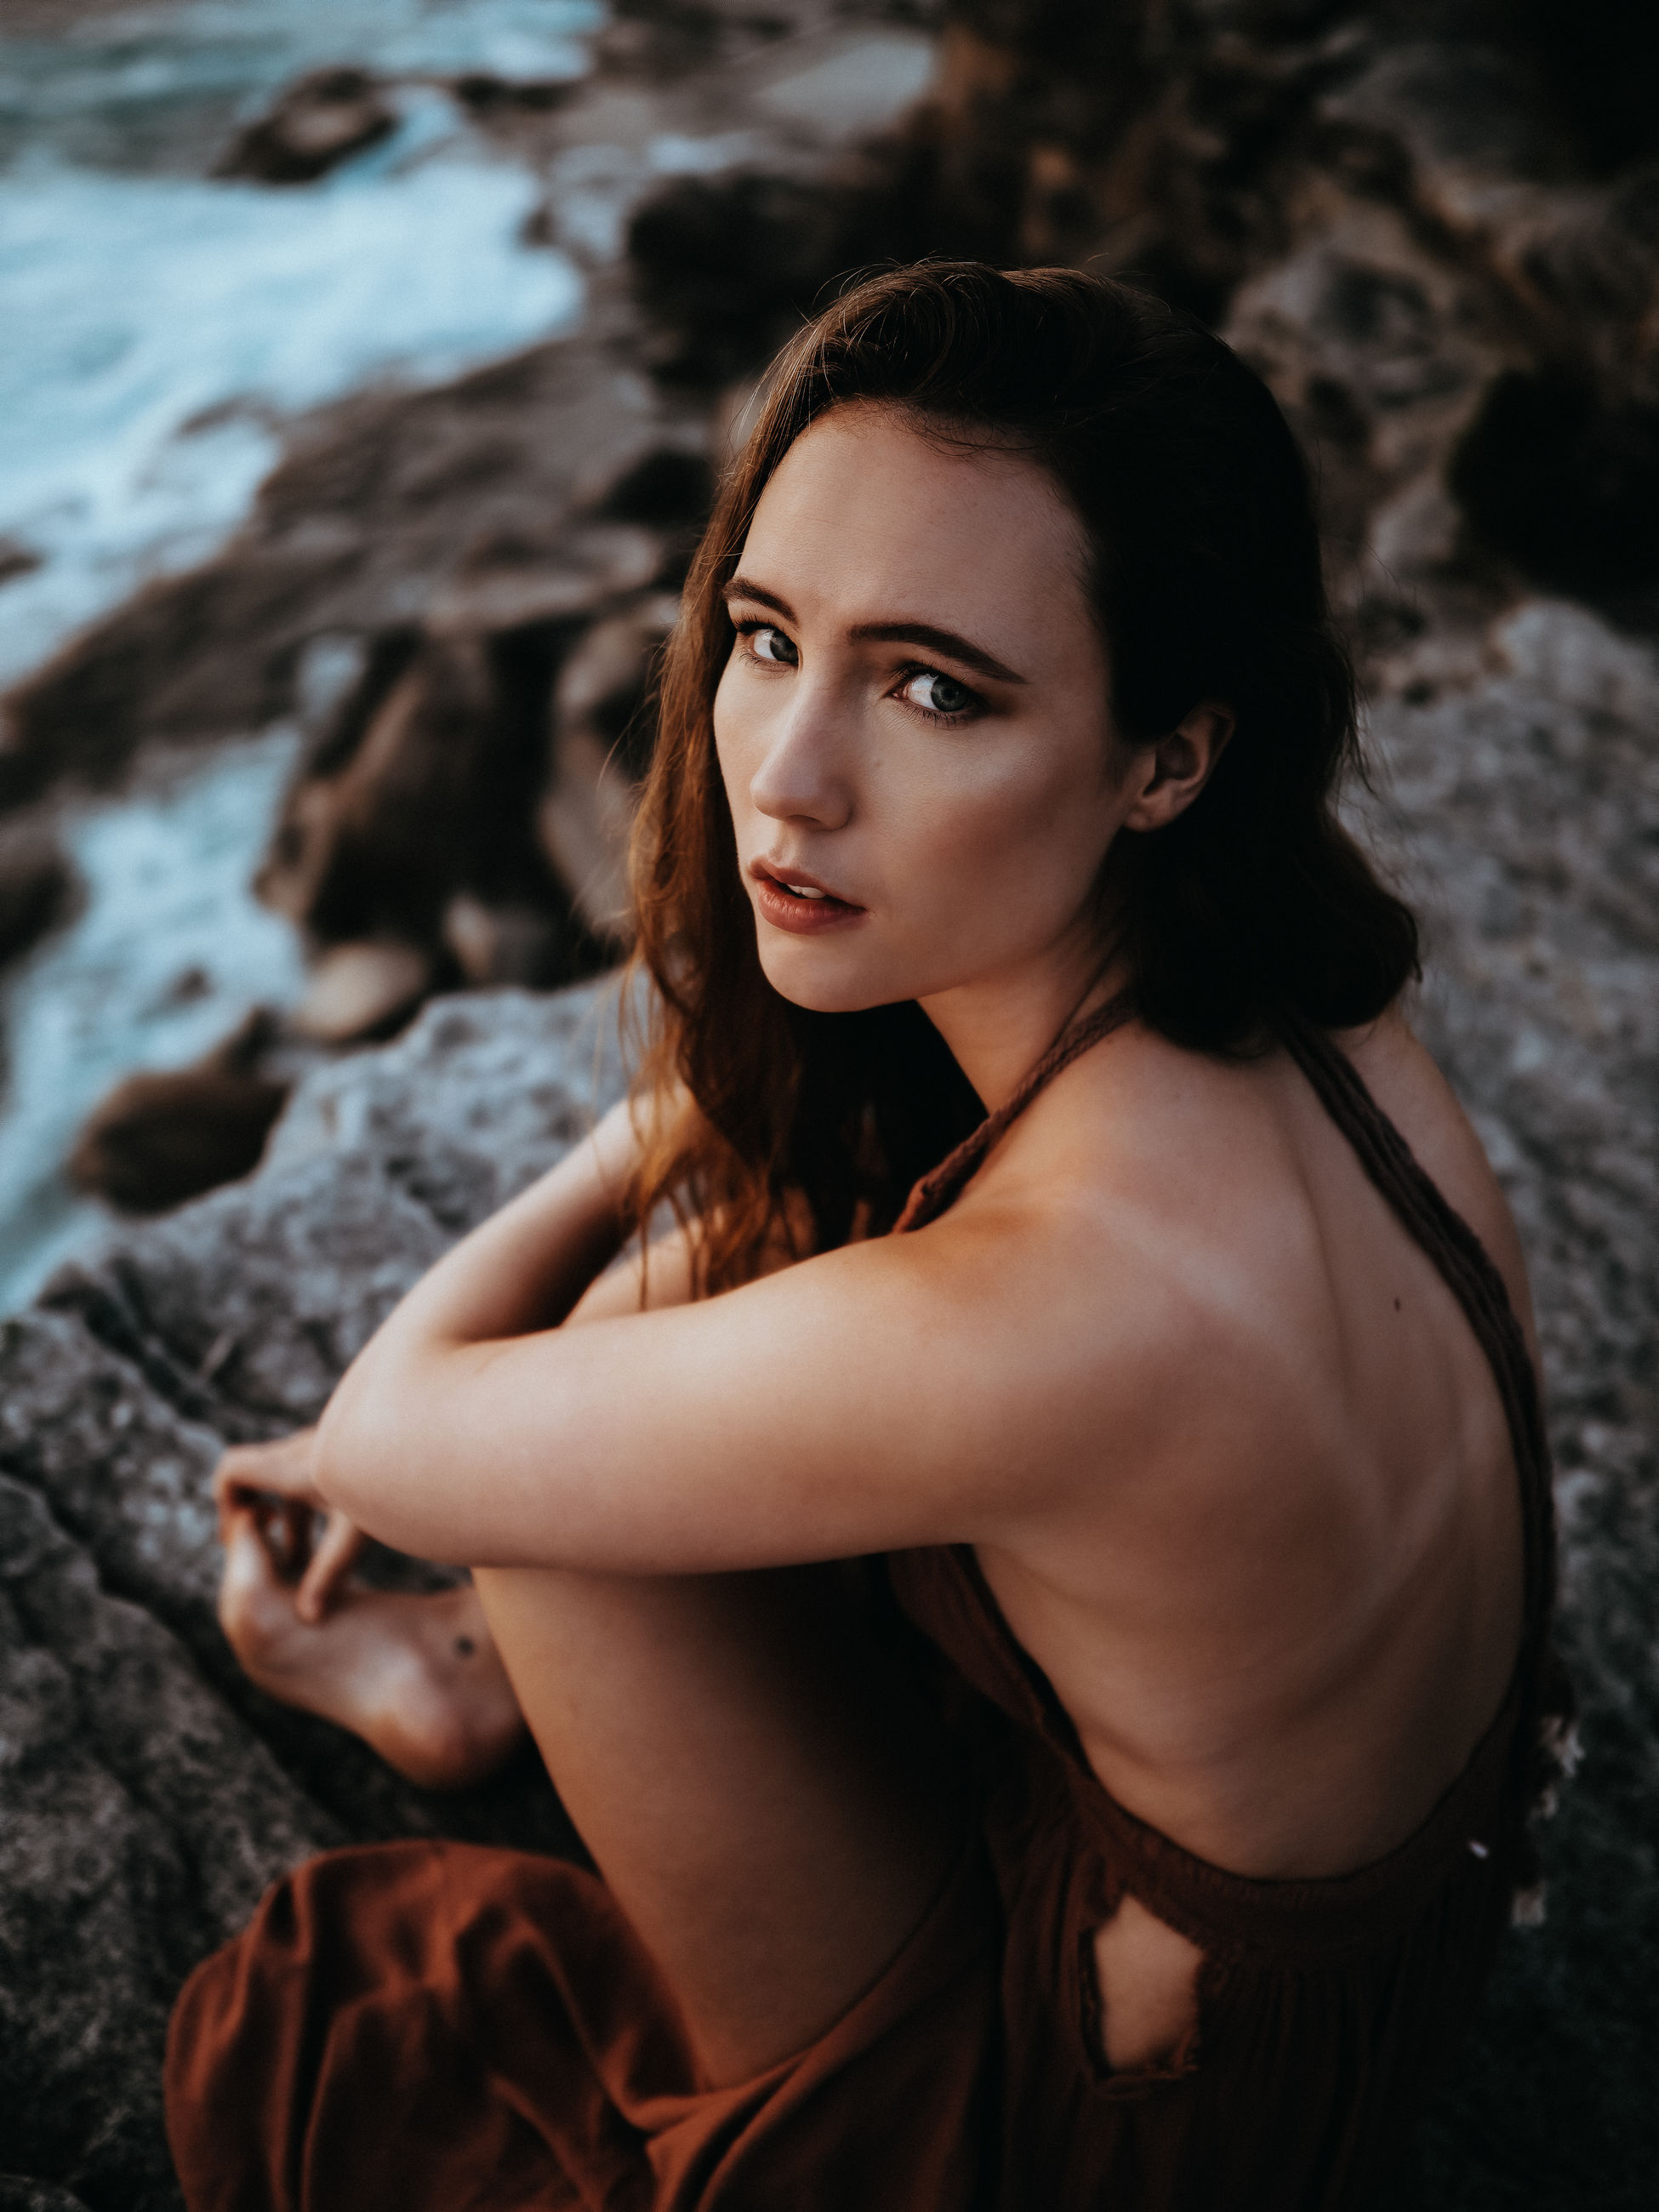 female, one person, women, adult, young adult, portrait, portrait photography, hairstyle, rock, land, long hair, photo shoot, water, looking at camera, nature, sitting, fashion, clothing, brown hair, beauty in nature, sea, beach, relaxation, dress, person, contemplation, looking, outdoors, serious, side view, dusk, focus on foreground, solitude, tranquility, emotion